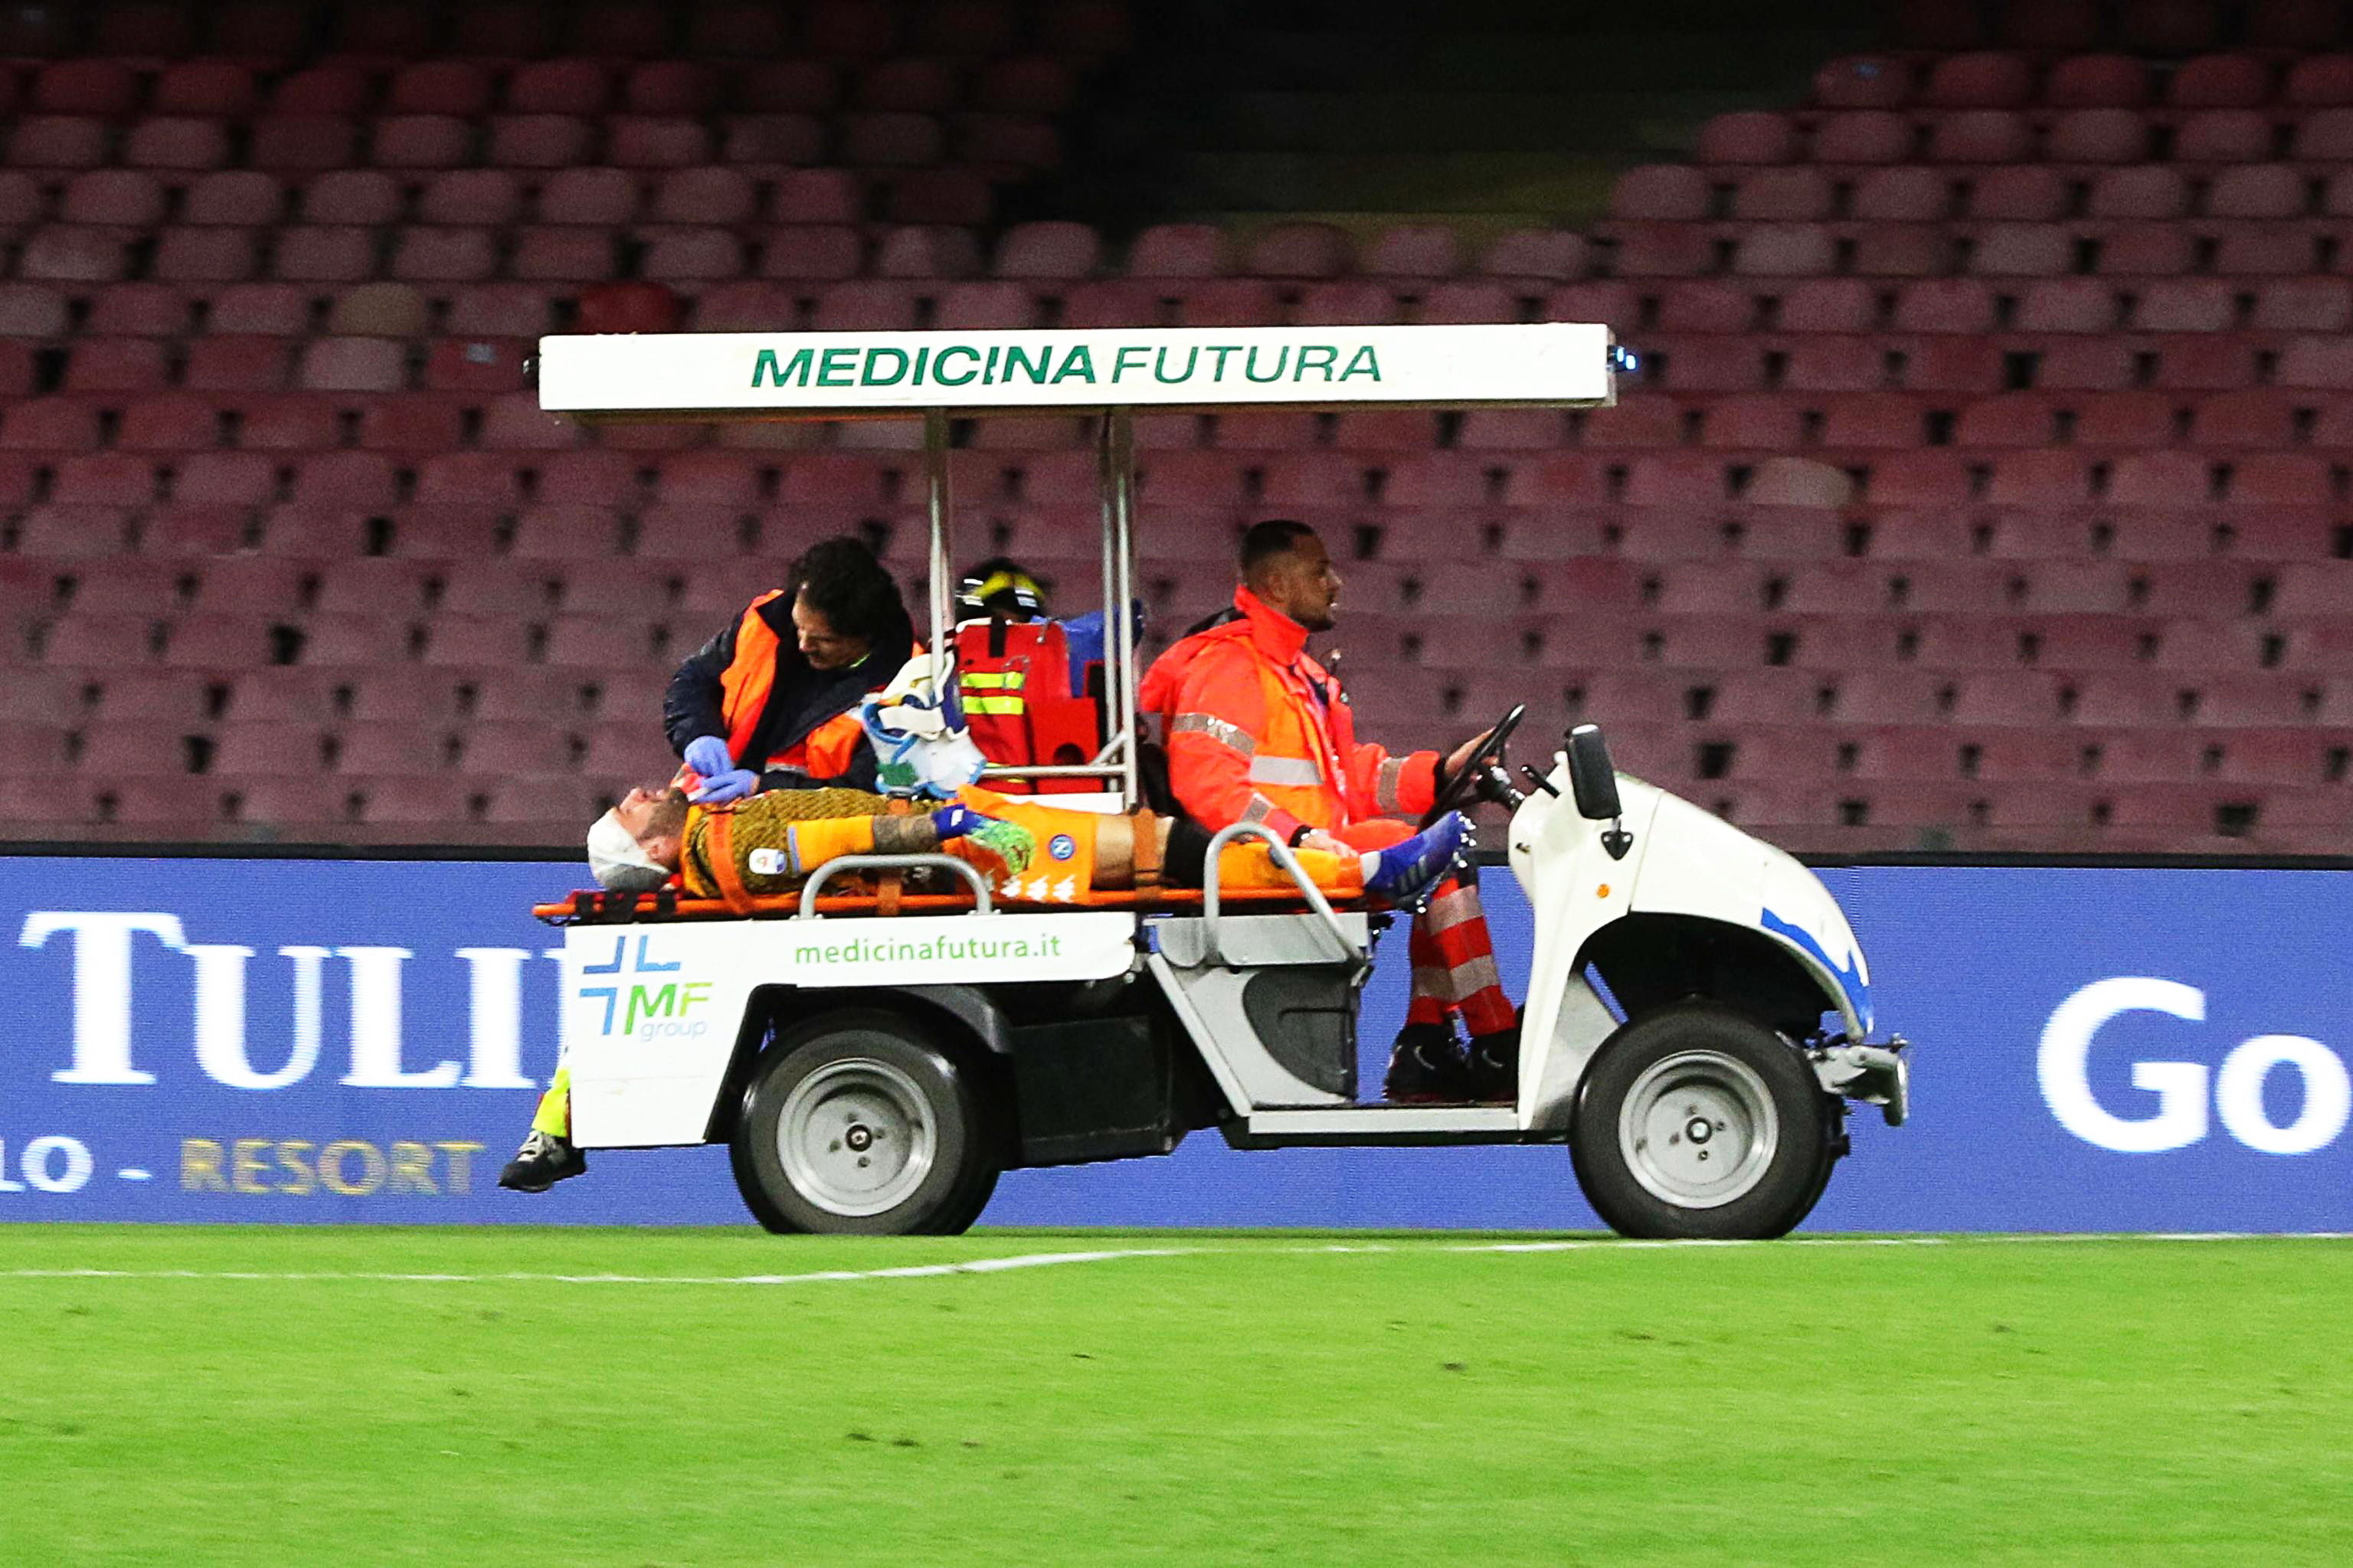 Naples (Italy), 17/03/2019.- Napoli's goalkeeper David Ospina (L) receives medical assistance as he leaves the pitch on a vehicle after being injured during the Italian Serie A soccer match between SSC Napoli and Udinese Calcio at the San Paolo stadium in Naples, Italy, 17 March 2019. (Italia, Nápoles) EFE/EPA/CESARE ABBATE